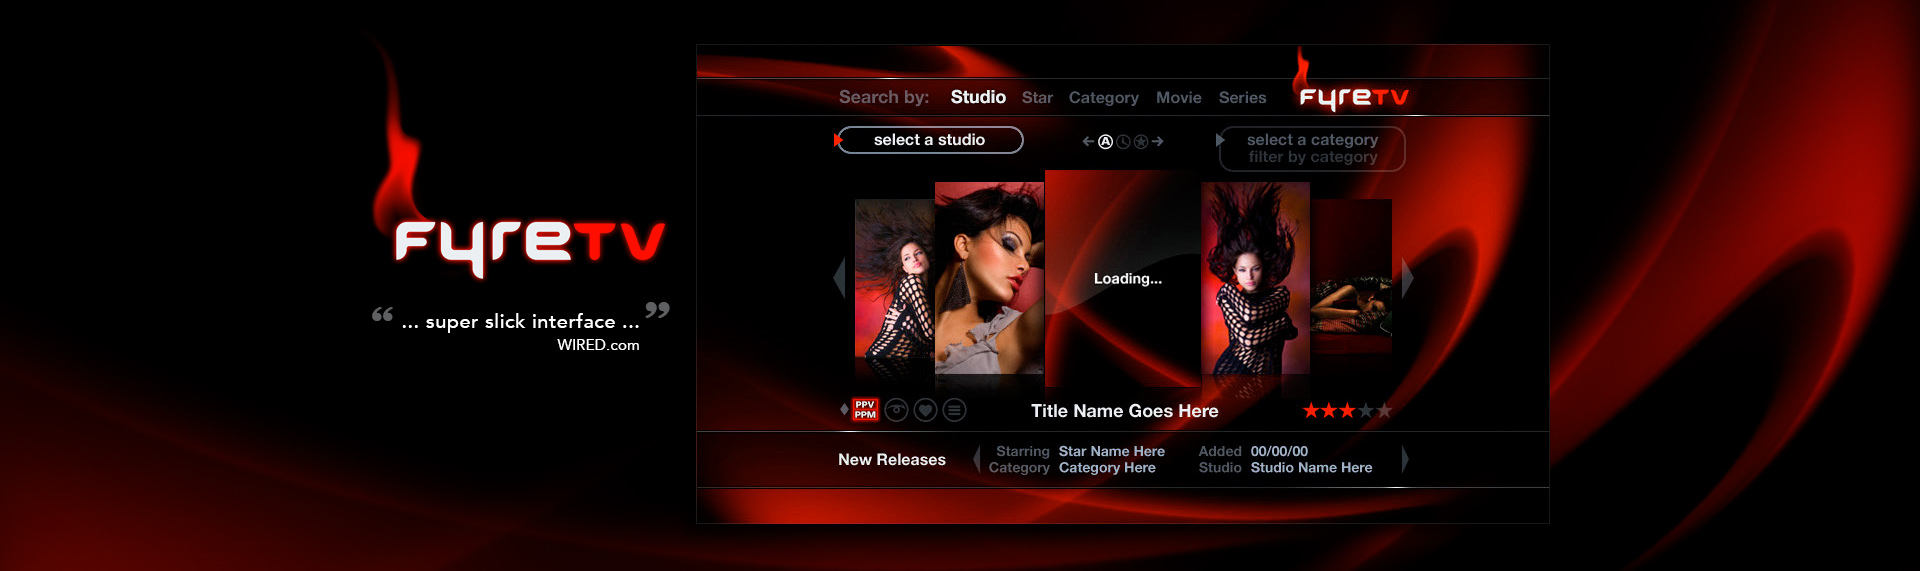 """FyreTV  VOD Application UX & UI Design, Brand Identity Design, Product Name Creation  The Skins Factory developed the entire application user interface for FyreTV. From designing application iconography, mapping out the remote control to the full screen GUI. TSF also developed the FyreTV TV Guide, the account & login screens, settings panels and even the icons and placement of functionality on the hardware remote. The results as Wired.com states is a super slick interface. The Skins Factory not only created the application's UI, but also came up with the brand name """"FyreTV"""" and brand identity."""